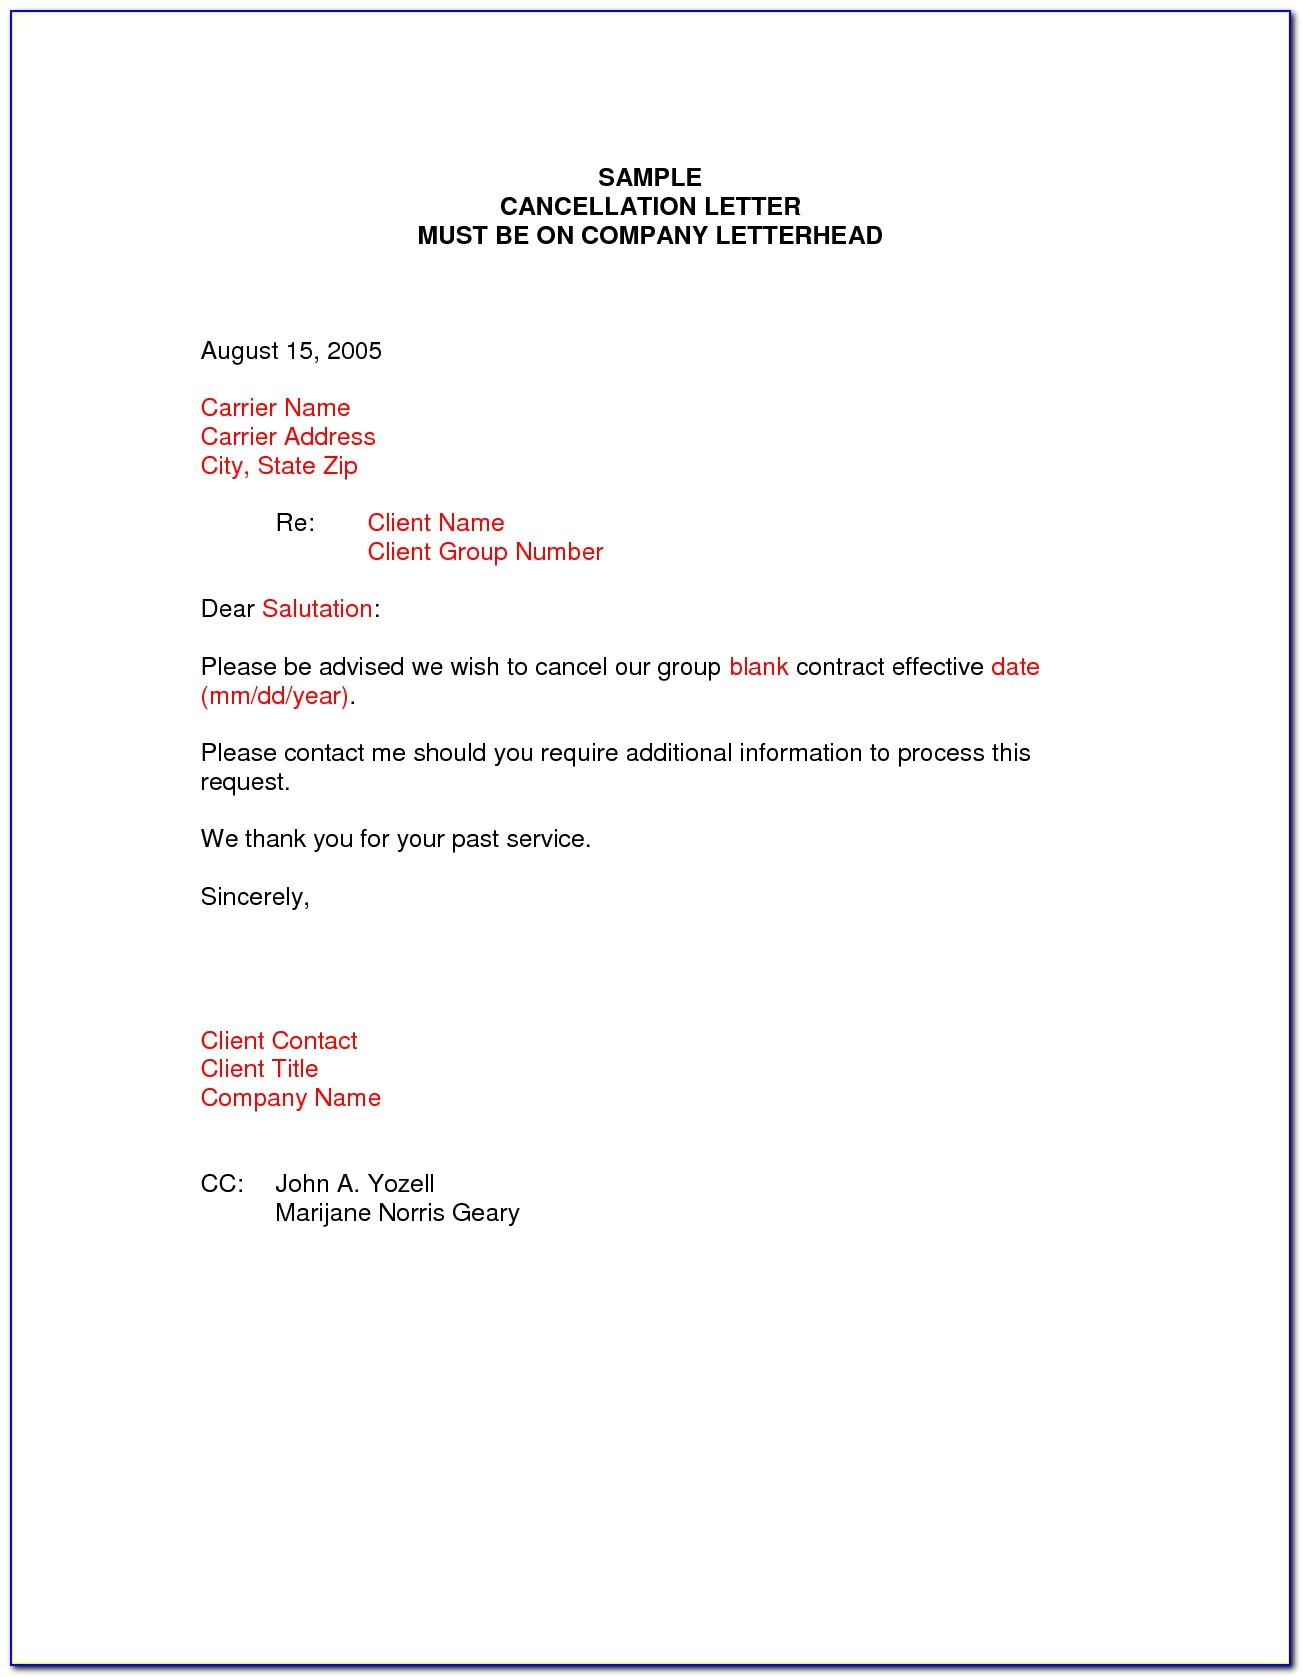 Mortgage Pmi Cancellation Letter